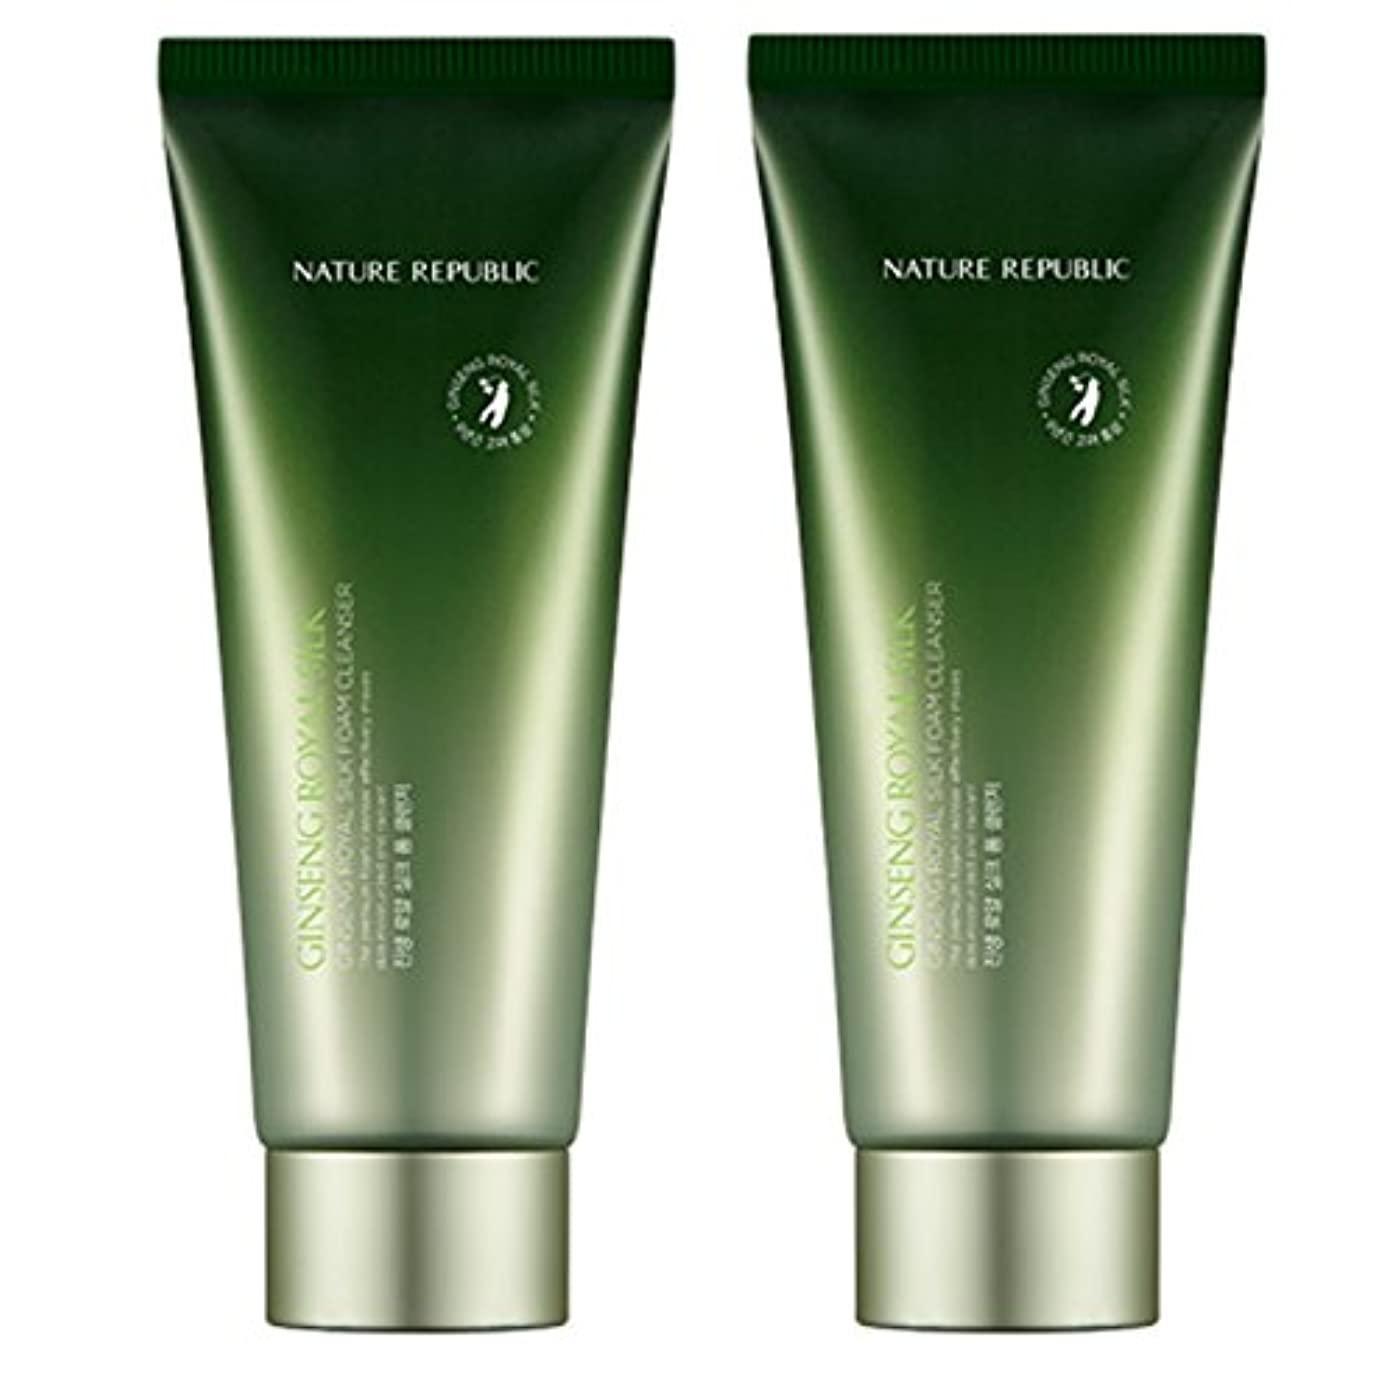 傾向があります奨励します再現する[韓国 Nature Republic] Nature Republic GINSENG ROYAL SILK Foam洗顔料 150 ml1+1クレンジング (Nature Republic GINSENG ROYAL...